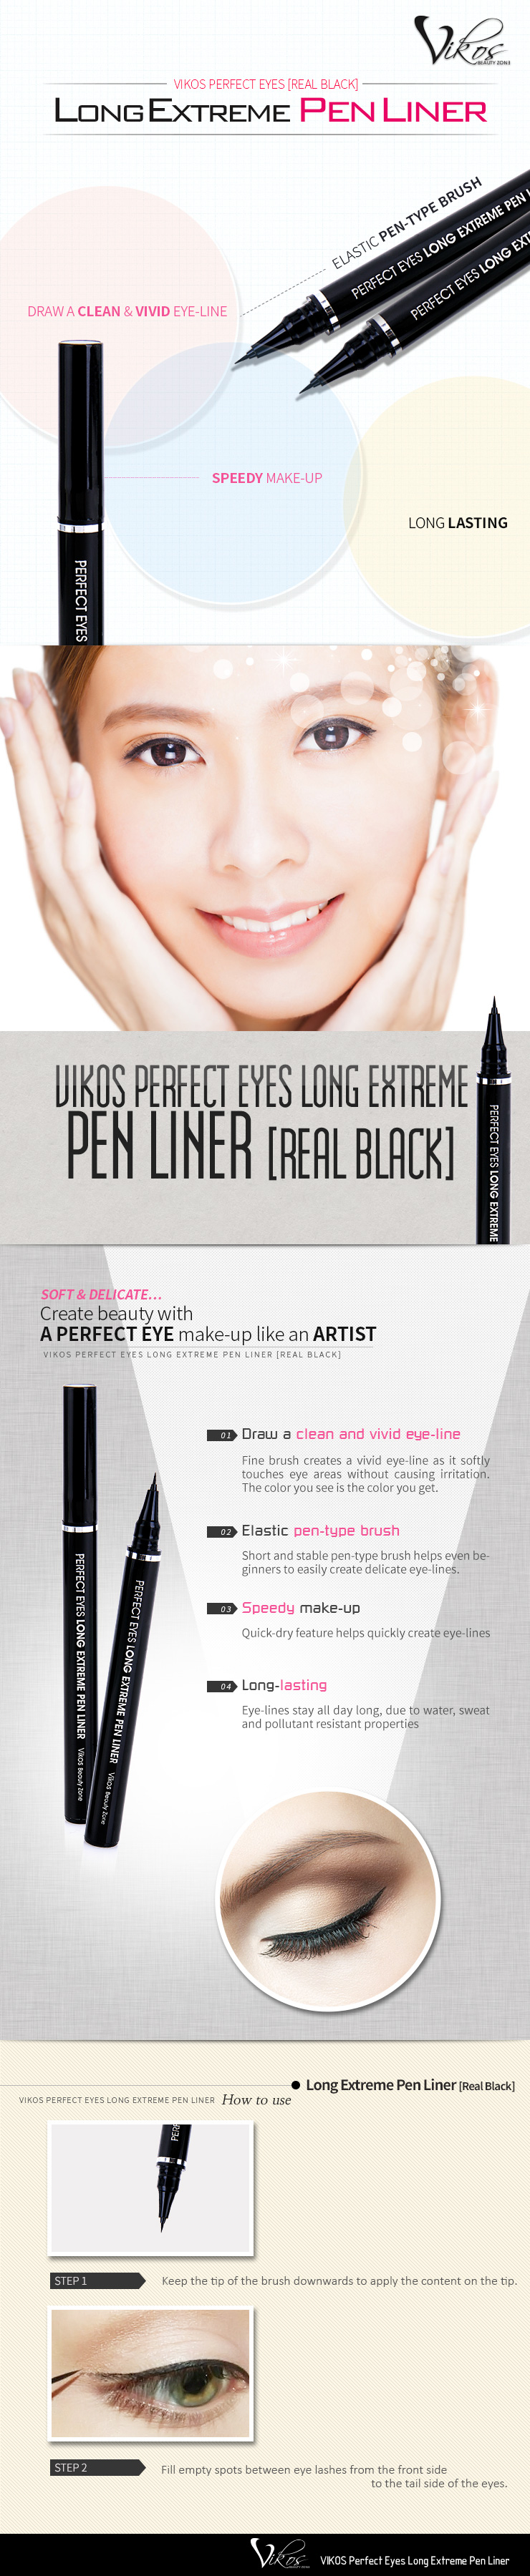 VIKOS Perfect Long Extreme Pen Eyeliner